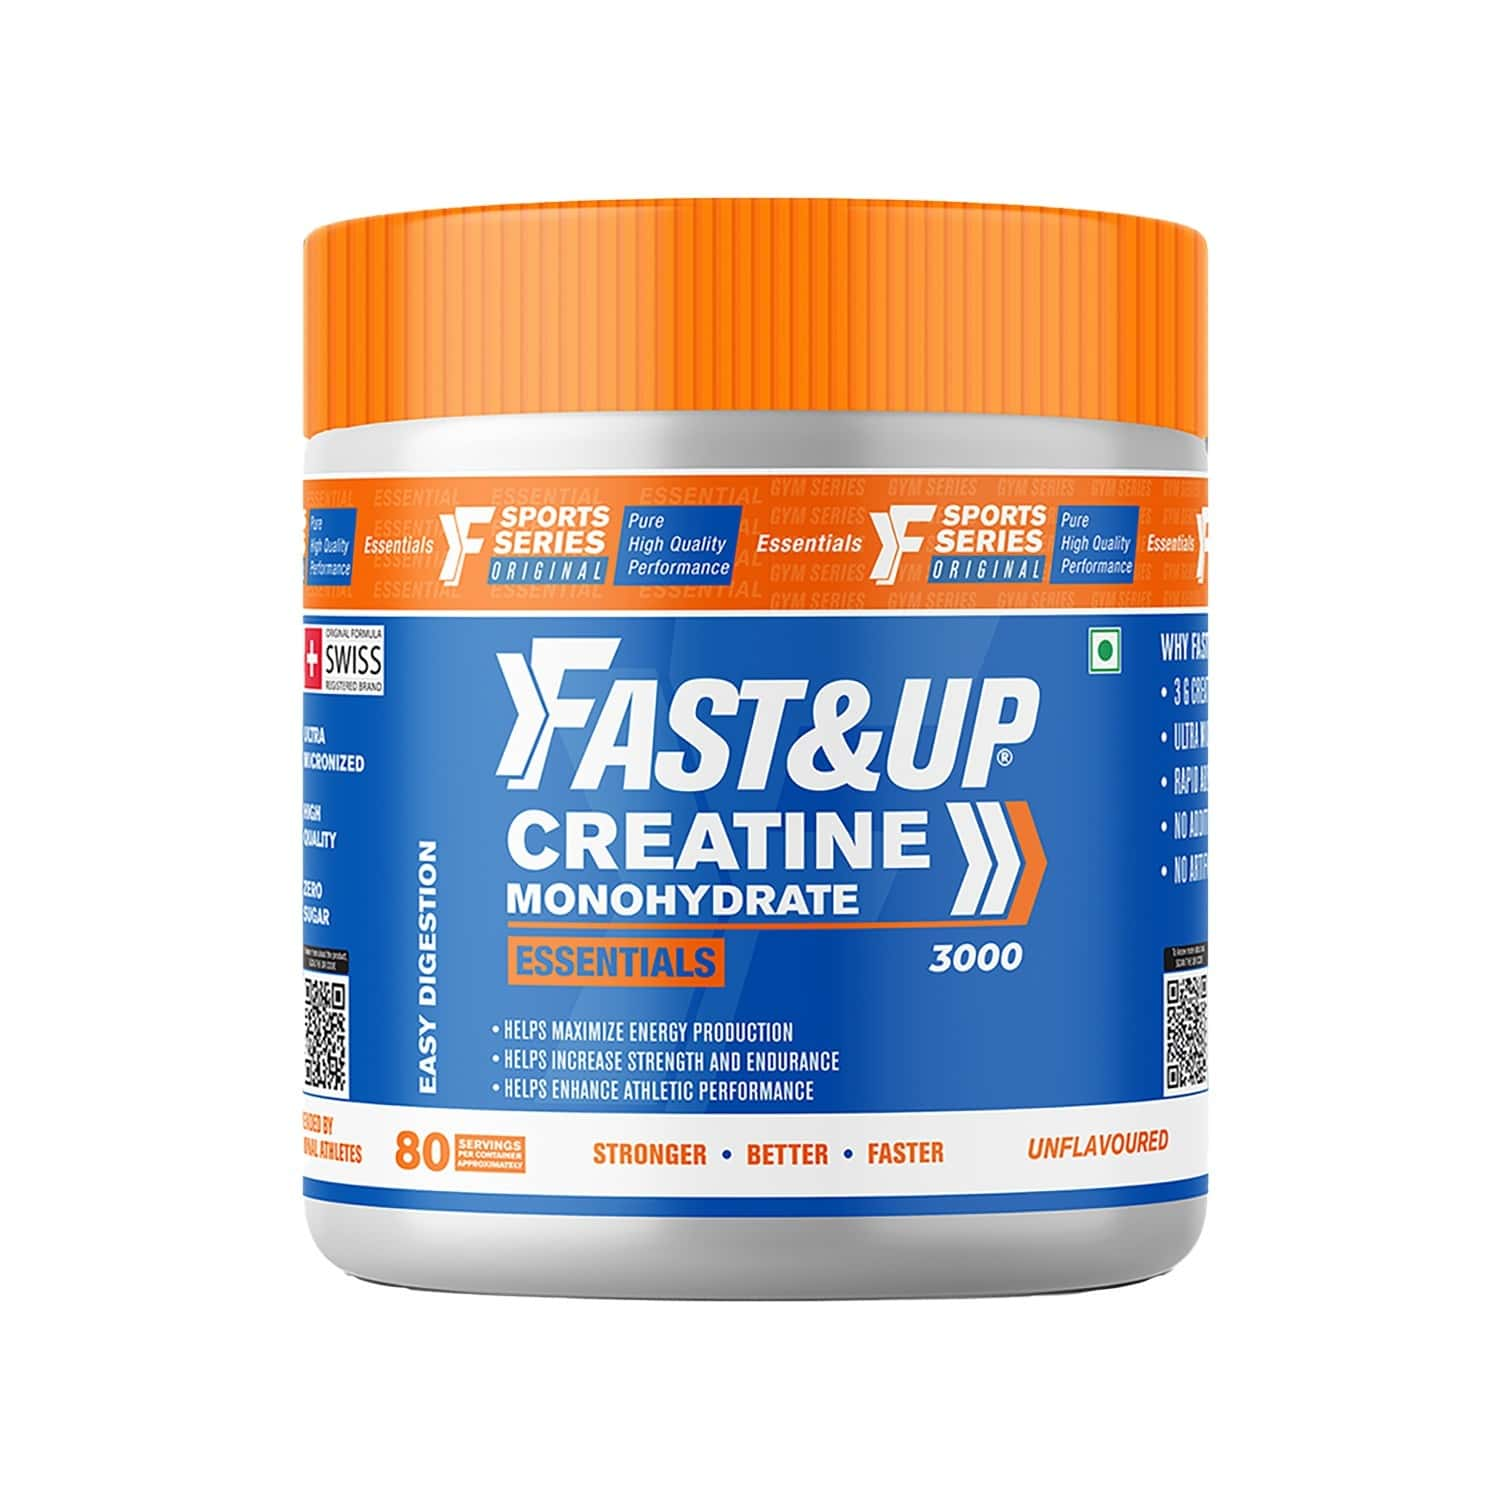 Fast&up Creatine Monohydrate Essentials-for Longer Workout,muscle Recovery-80 Serving(unflavored)